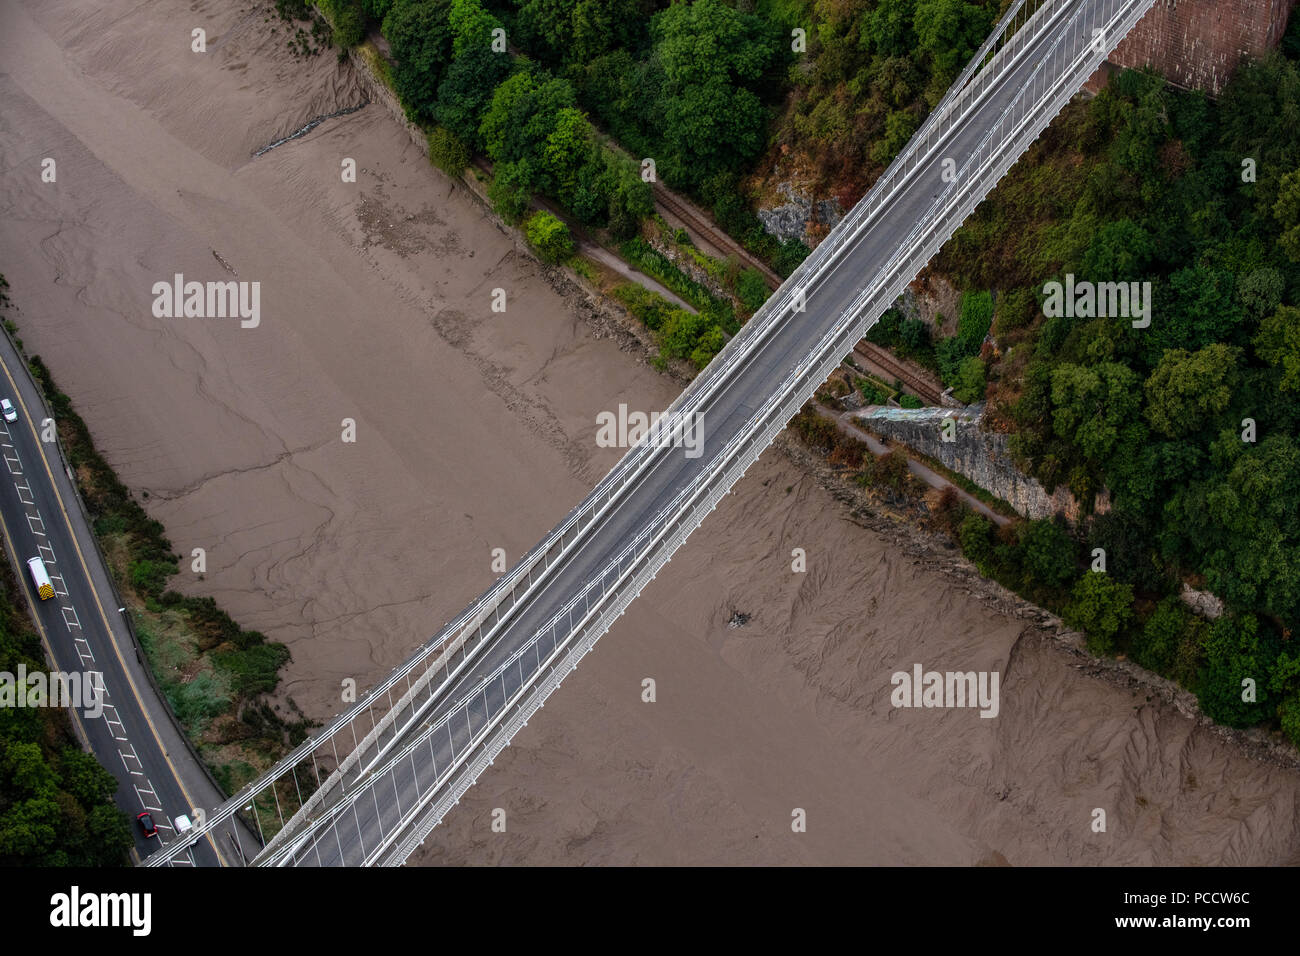 An aerial view of Clifton Suspension Bridge in Bristol, United Kingdom during the summer. Stock Photo